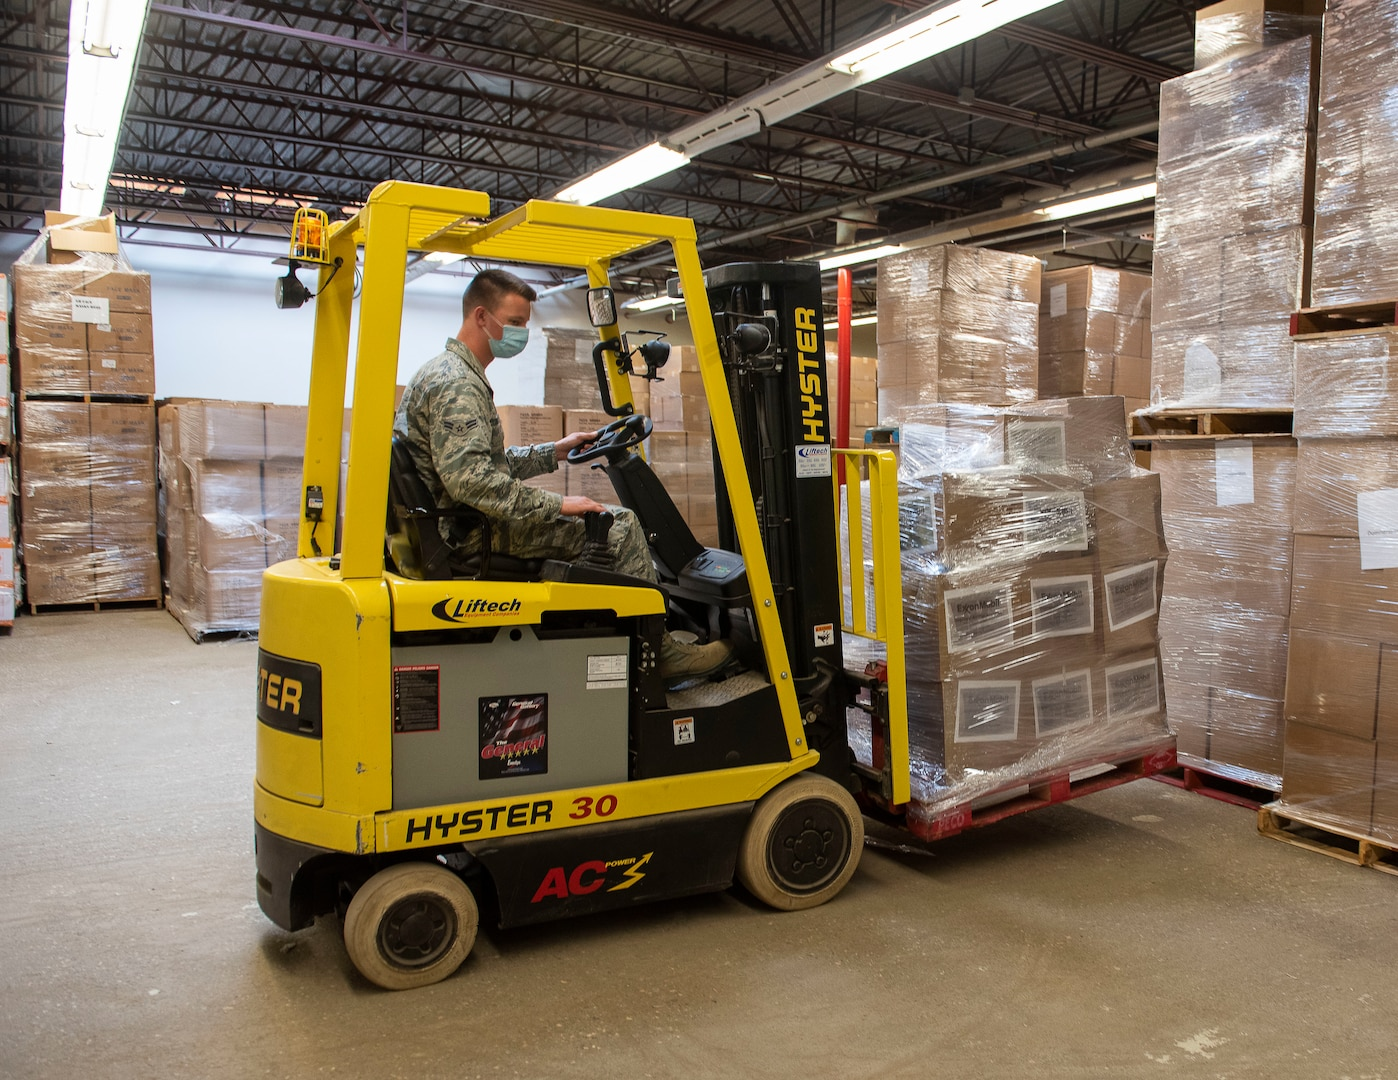 U.S. Air Force Airmen 1st Class Brett Woods from the 158th Fighter Wing, Vermont Air National Guard, maneuvers a forklift at the Strategic National Stockpile warehouse in Colchester, Vermont, August 27, 2020. The Defense Logistics Agency is working with the Federal Emergency Management Agency and the Department of Health and Human Services to replenish the nearly depleted SNS with personal protective equipment as the nation continues responding to COVID-19.